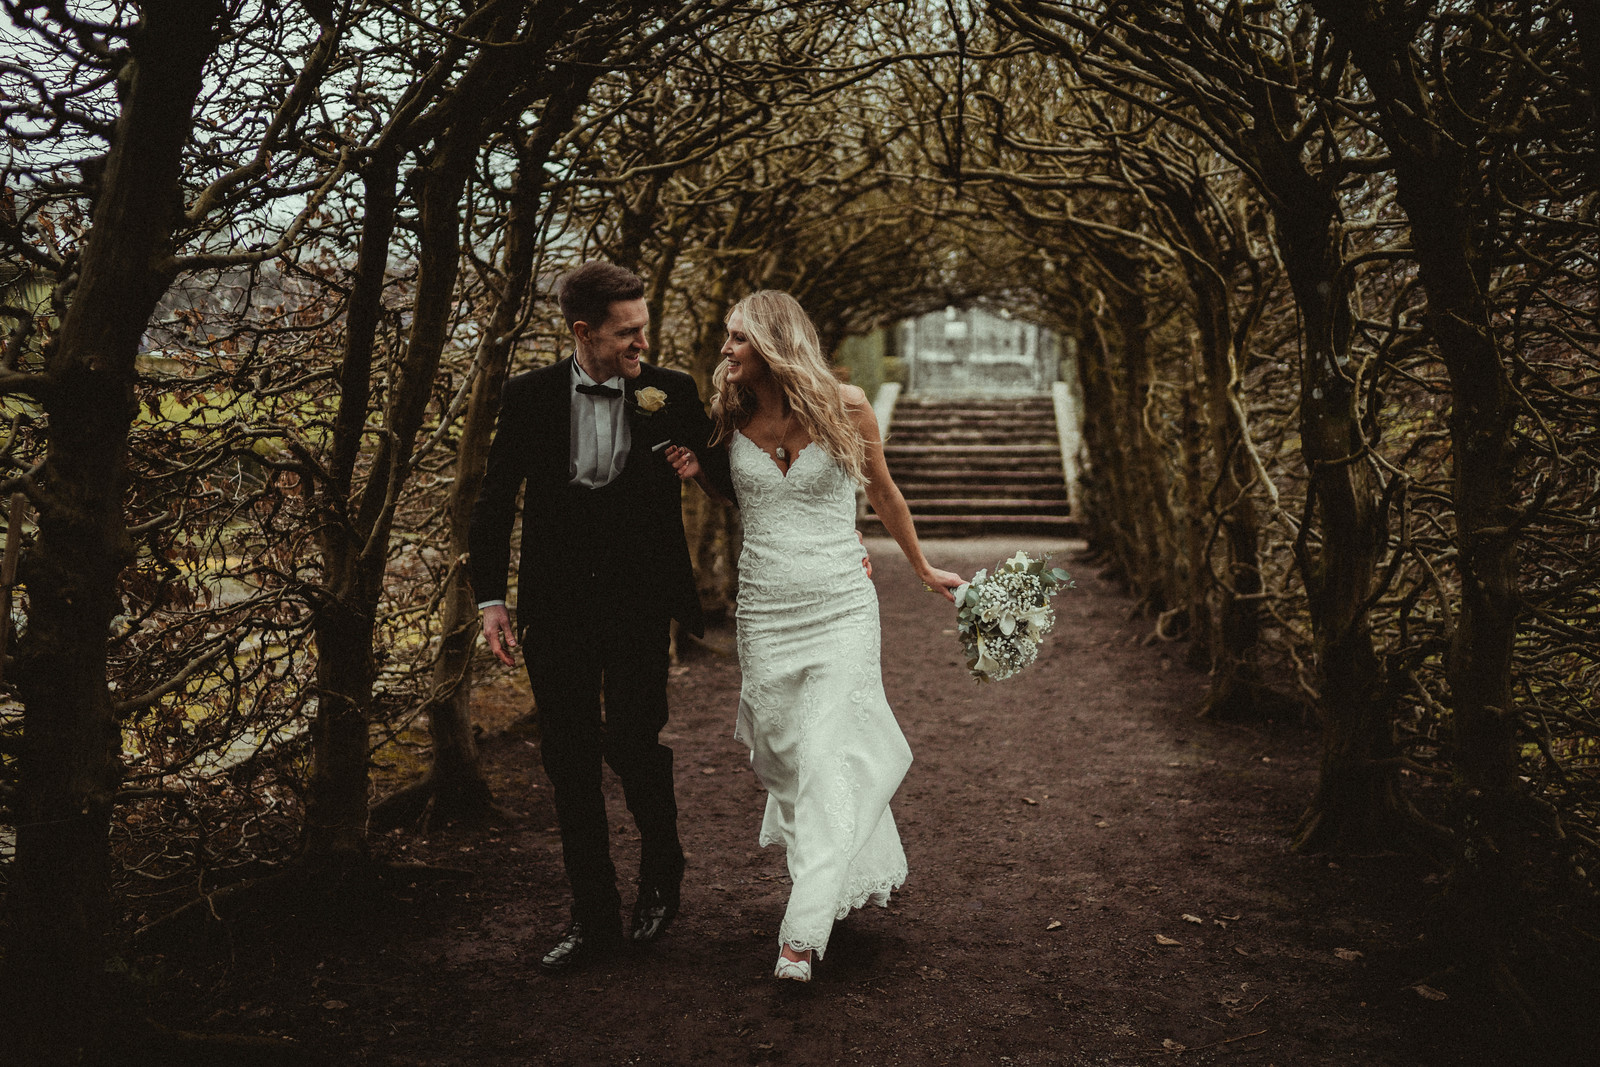 Bride and groom walk through a woodland archway - South Wales Wedding Photographers